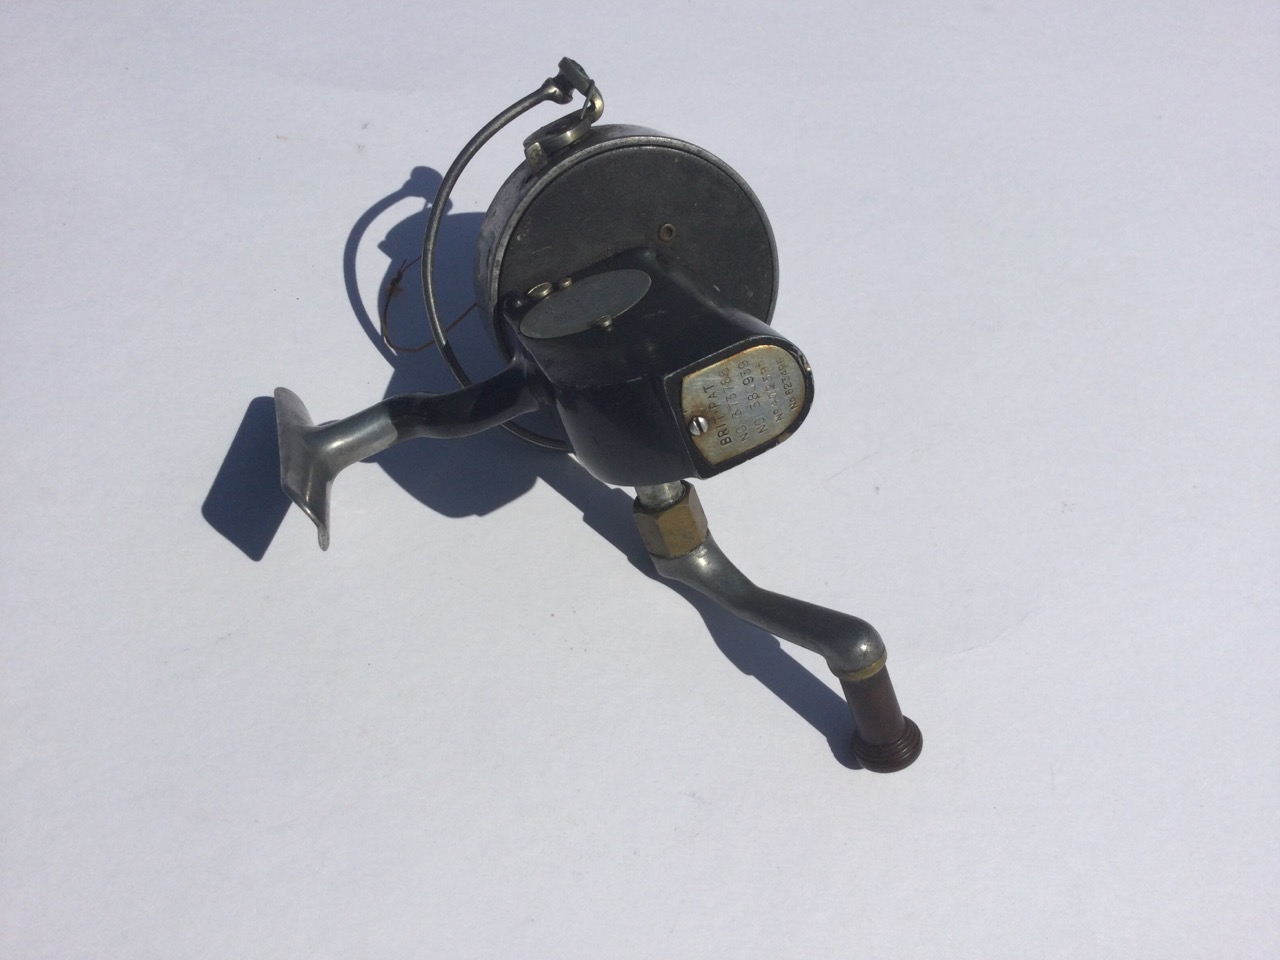 A Hardy Altex spinning reel, No 2 Mark V, having grey metallic body and folding handle. - Image 2 of 3